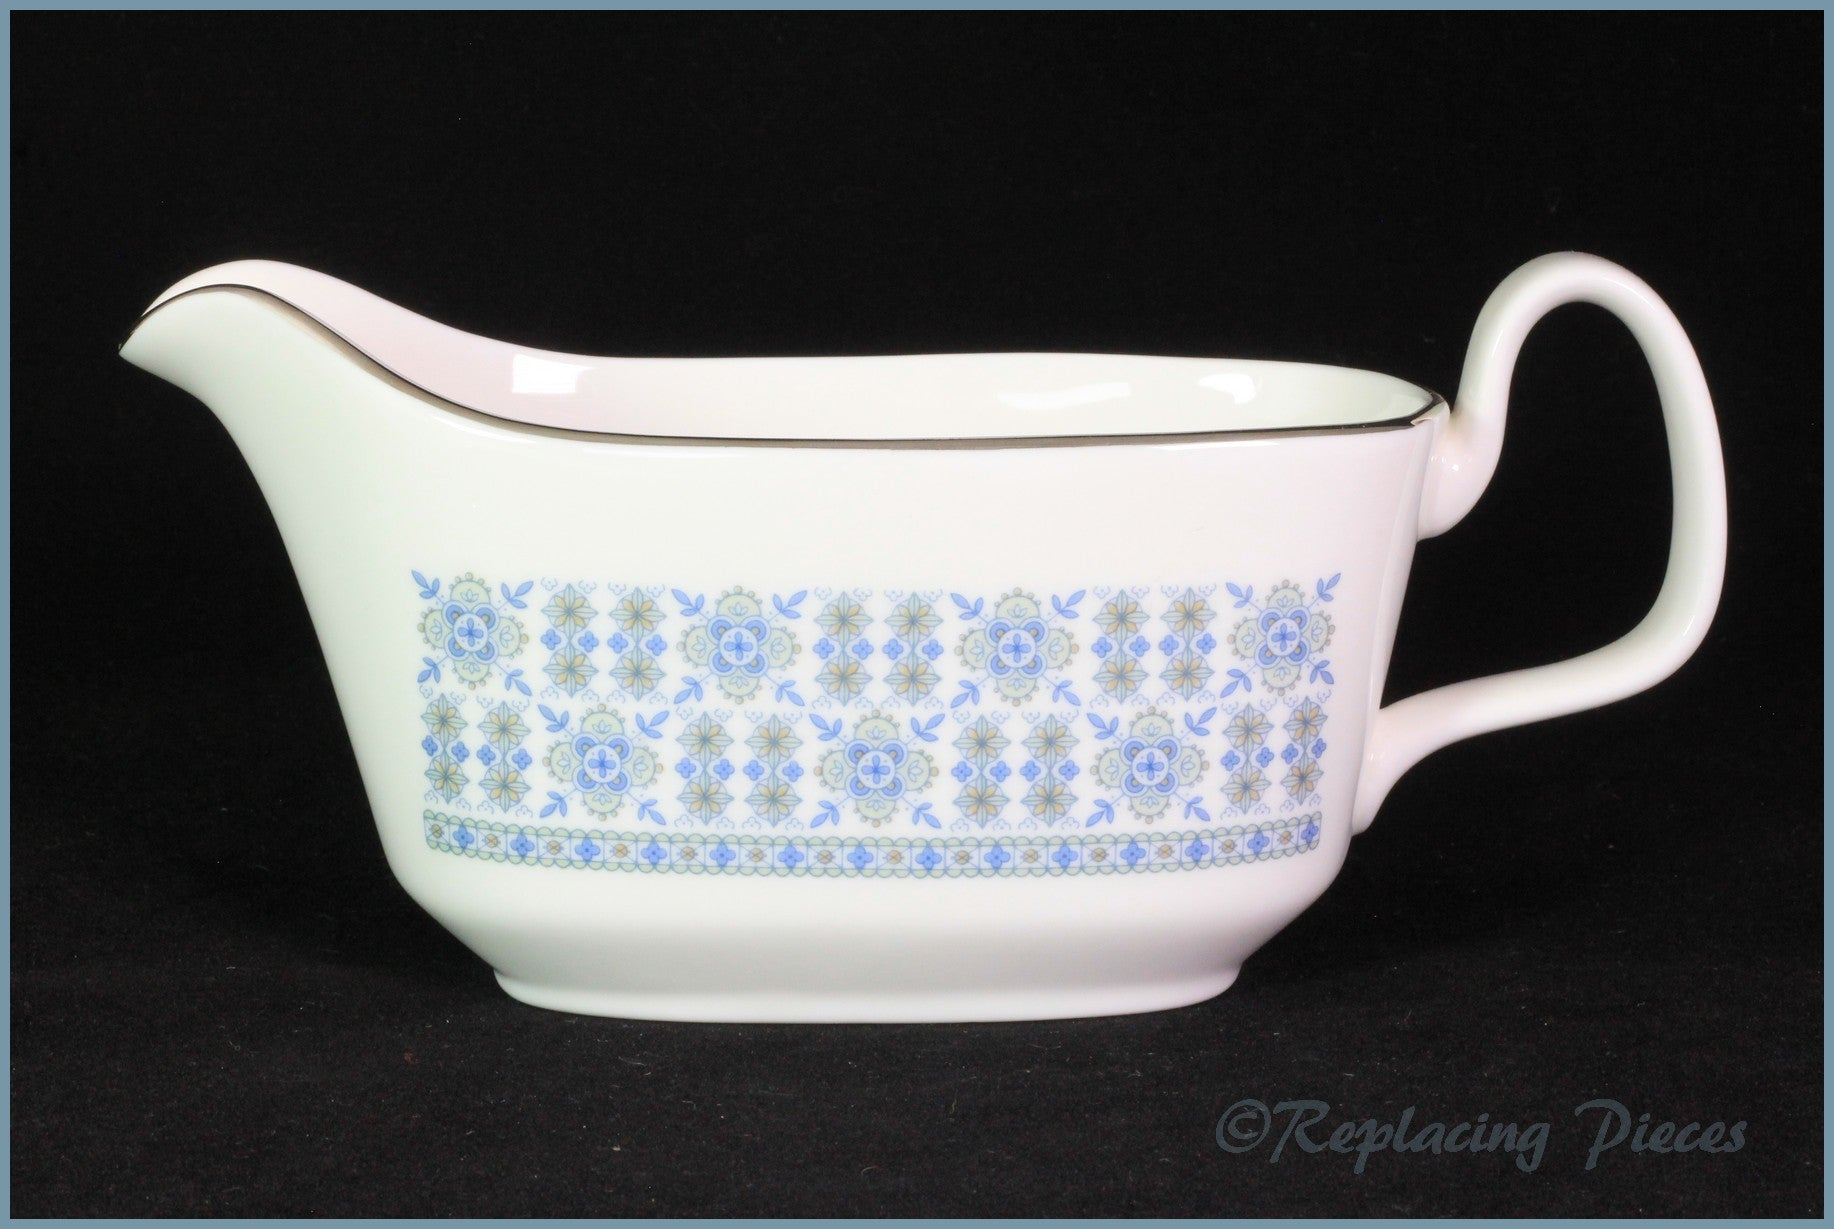 Royal Doulton - Counterpoint (H5025) - Gravy Boat